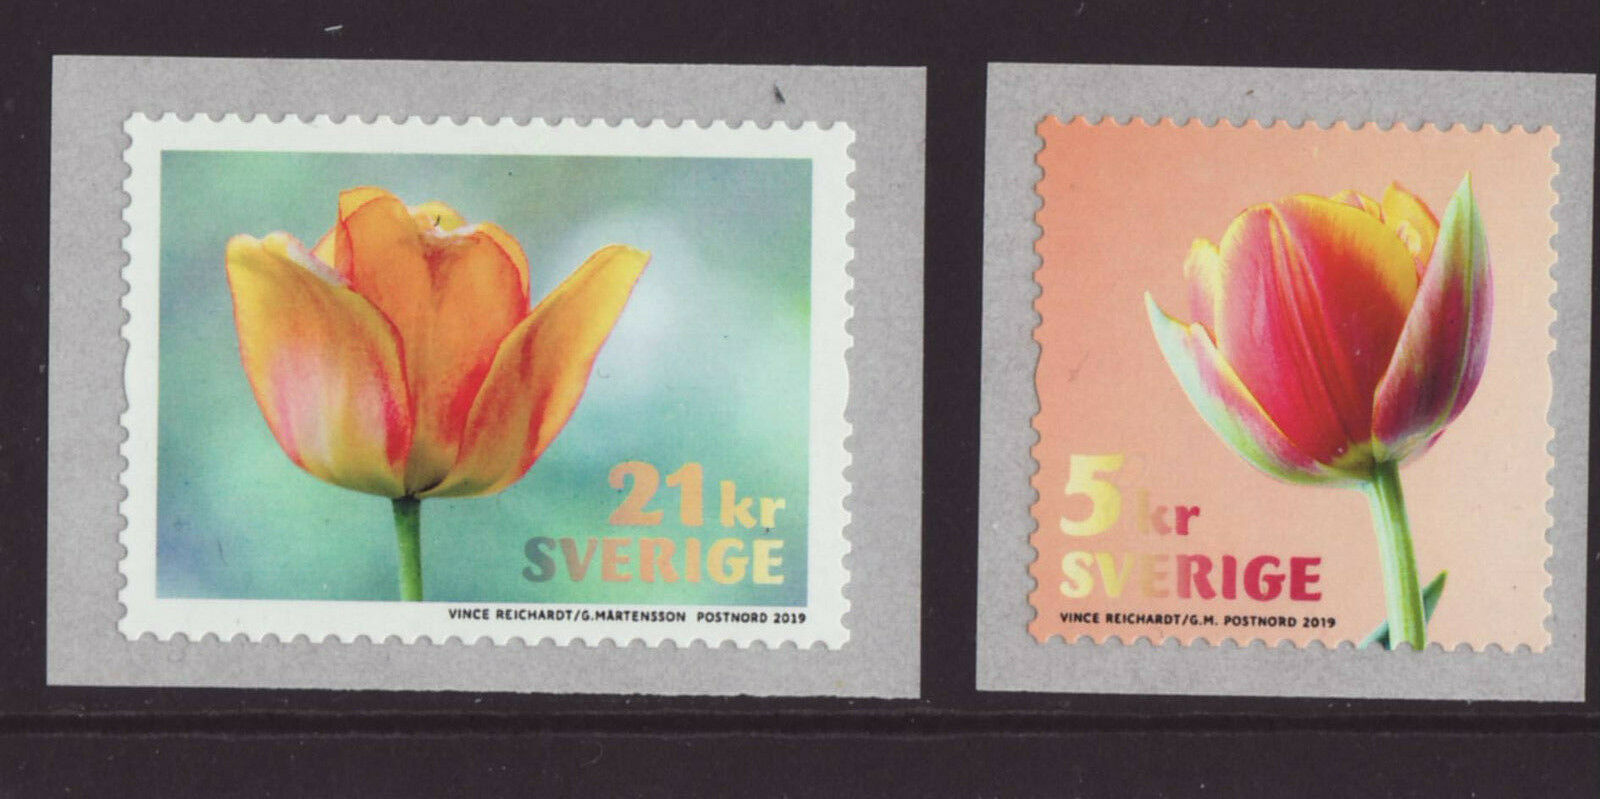 Sweden - Tulips (January 10, 2019) coil stamps